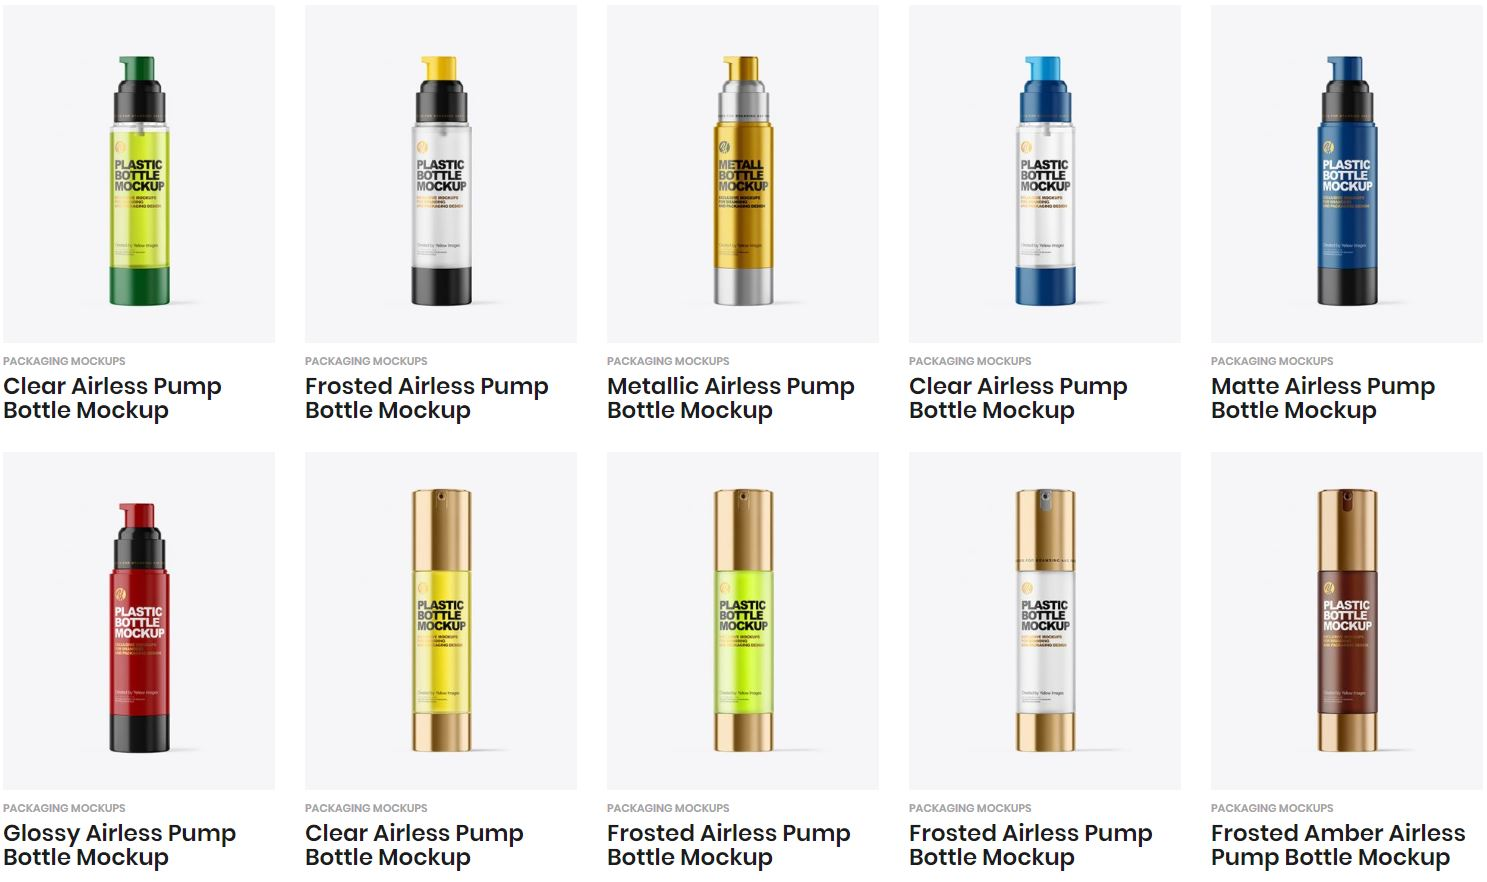 Download 100 Best Airless Bottle Mockup Templates Free Premium PSD Mockup Templates